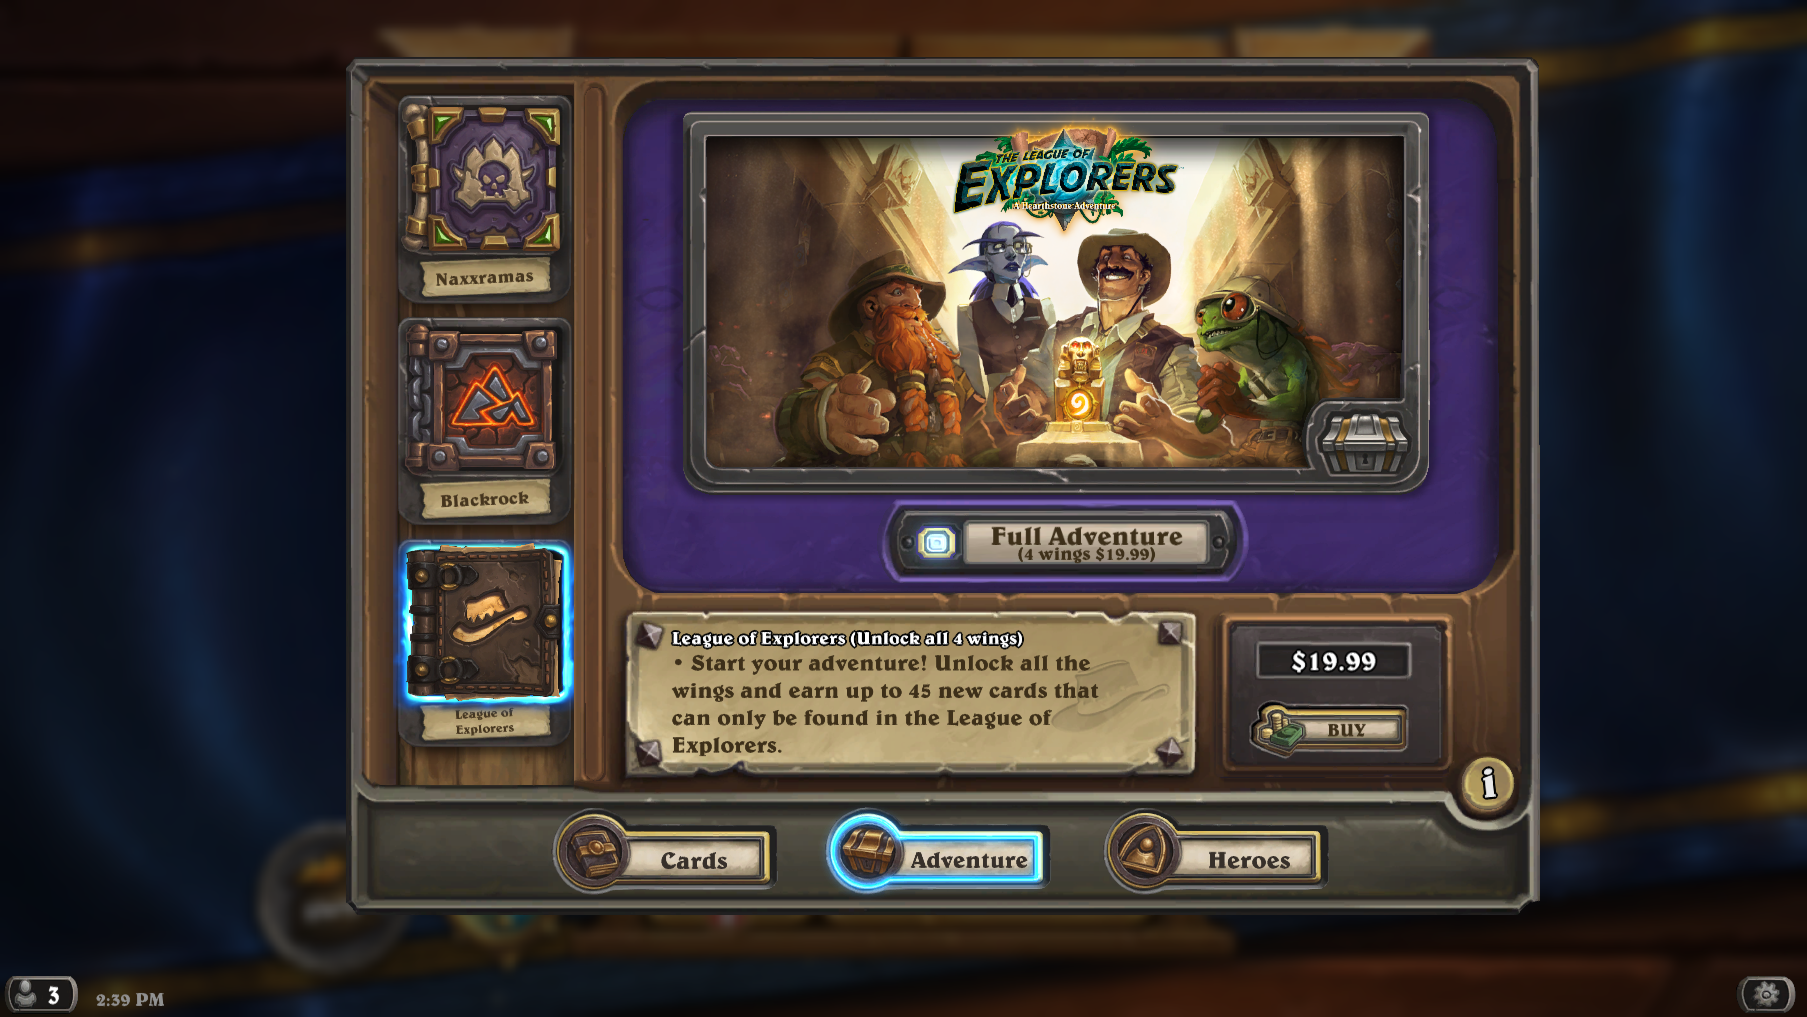 hearthstone screenshot 11-10-15 14.39.49.png